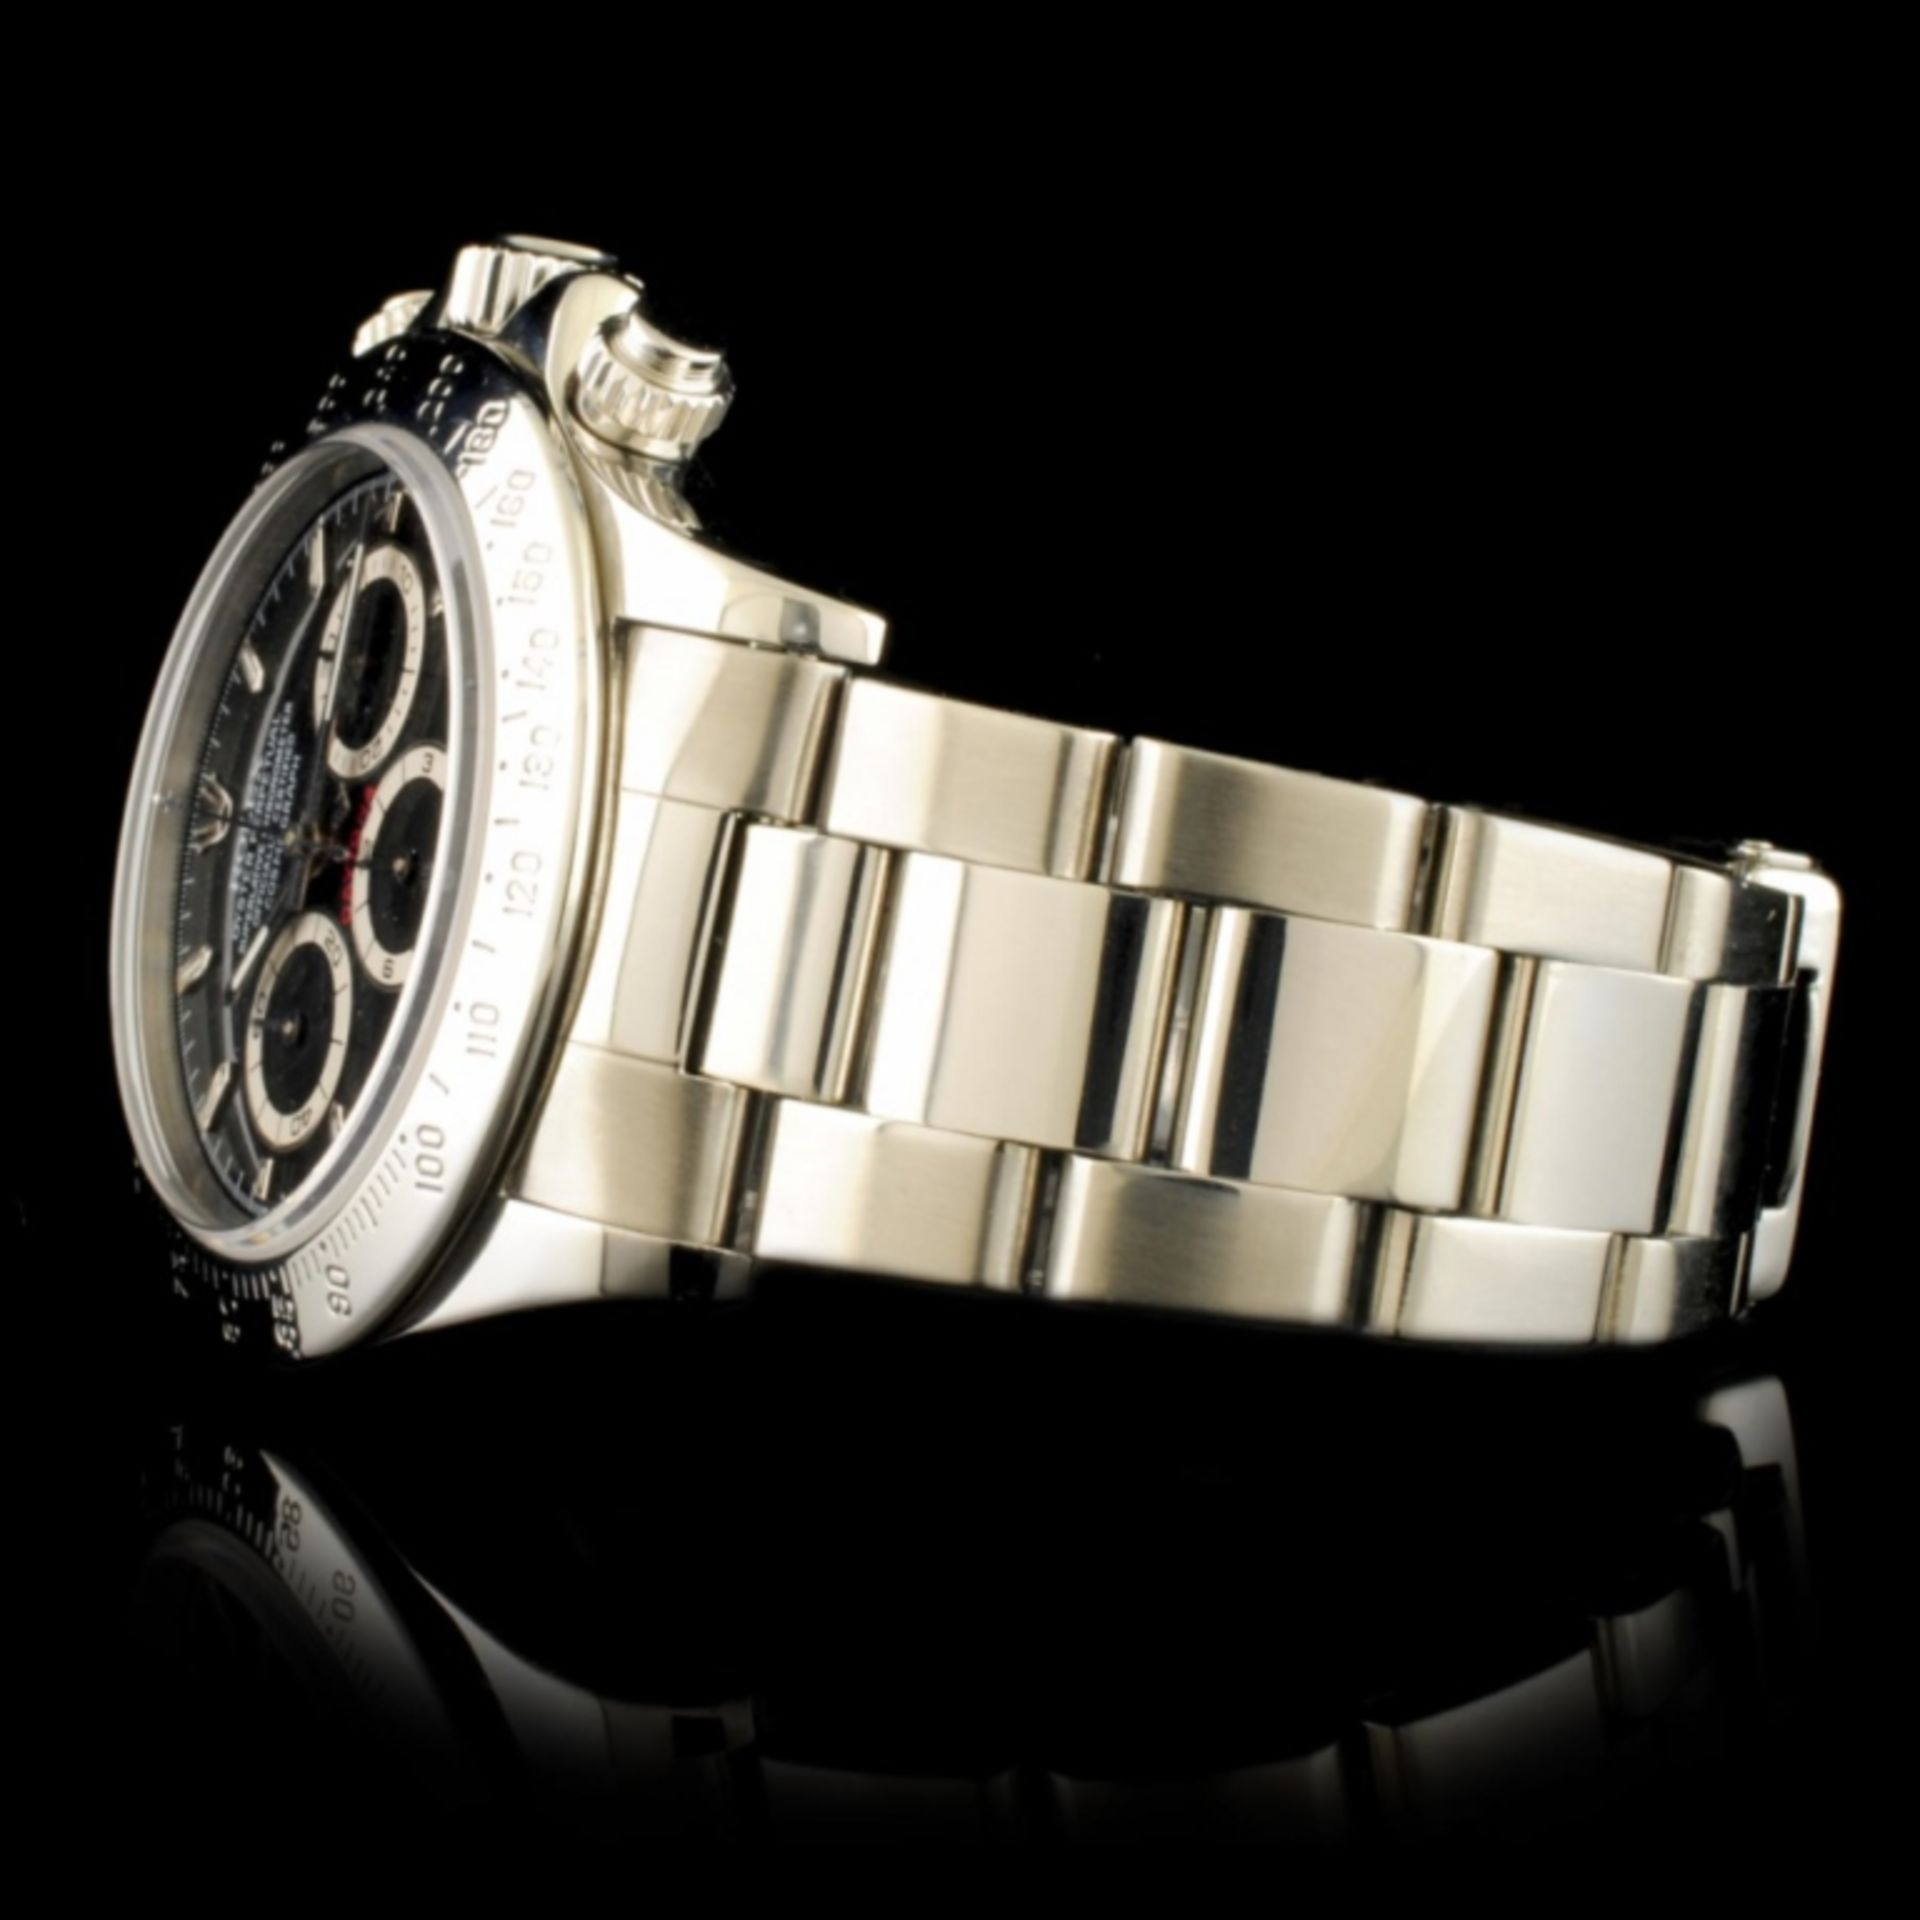 Rolex DAYTONA Cosmograph 16520 40MM Wristwatch - Image 4 of 9